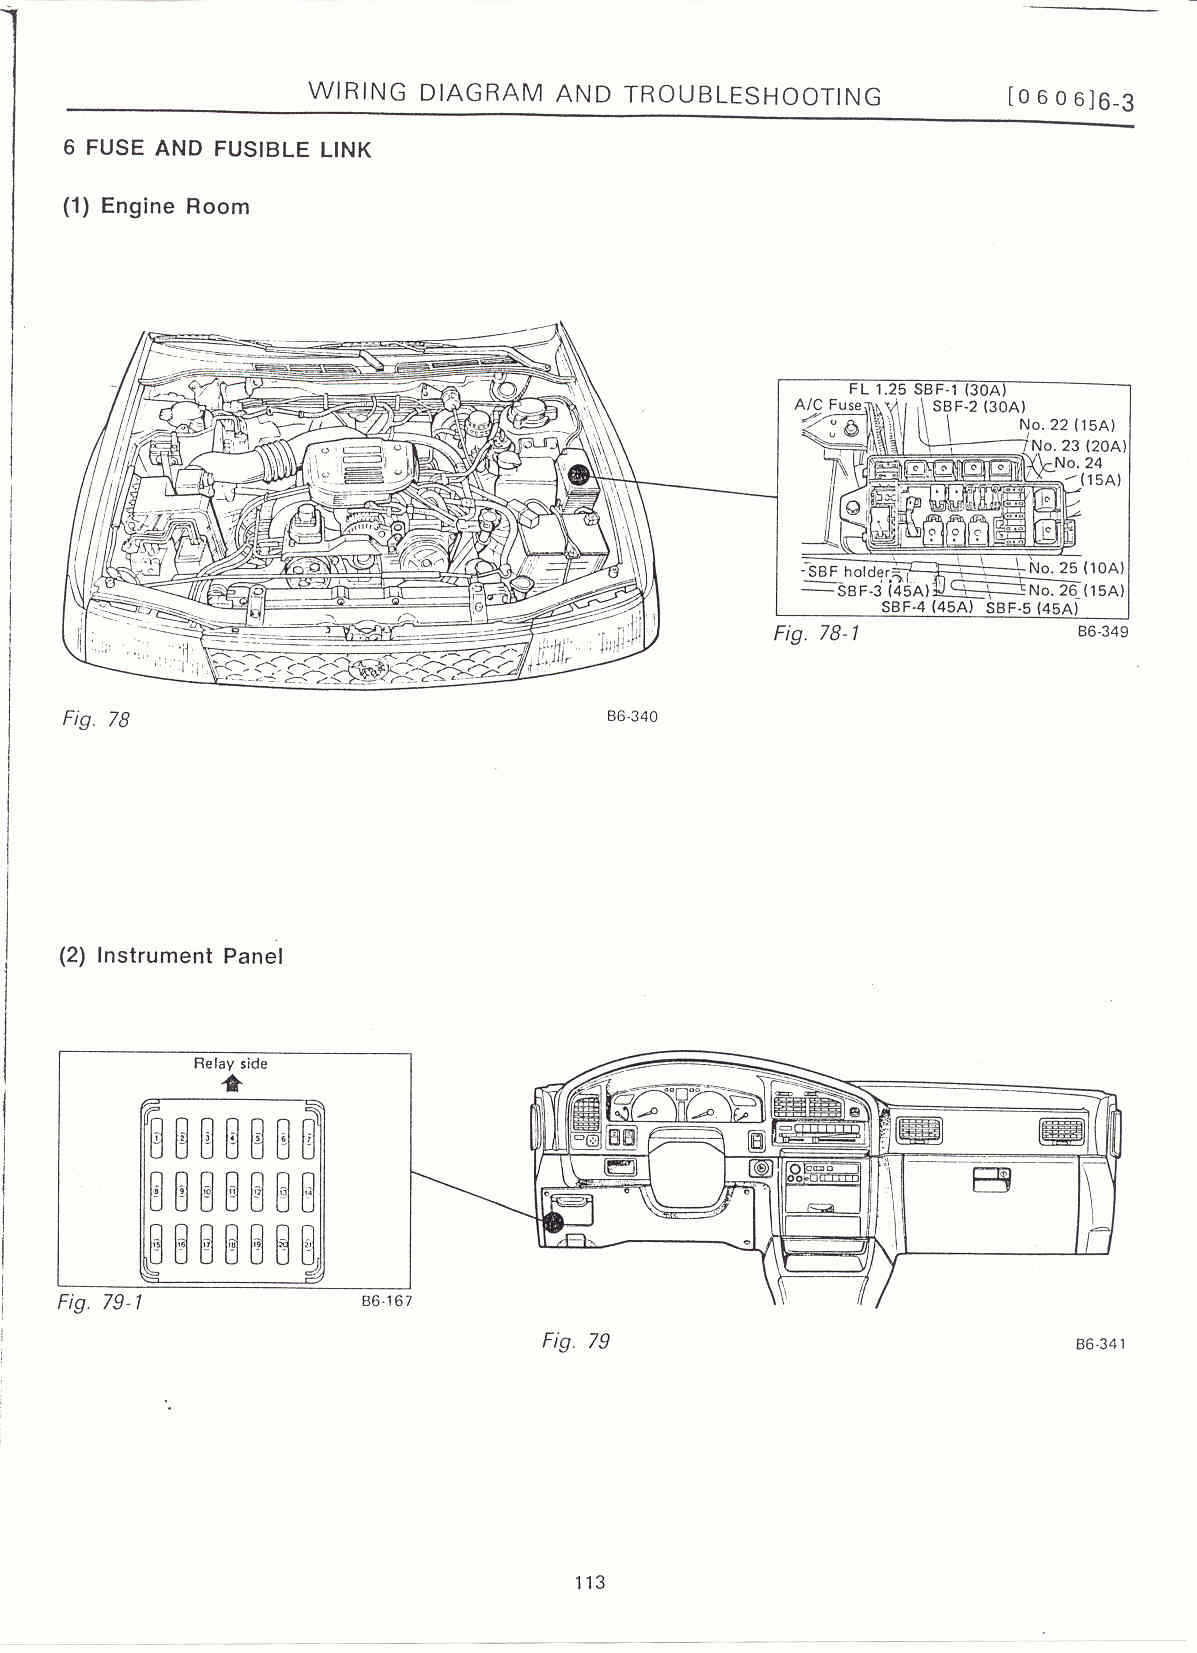 2000 Subaru Outback Wiring Diagram | Wiring Diagram Database